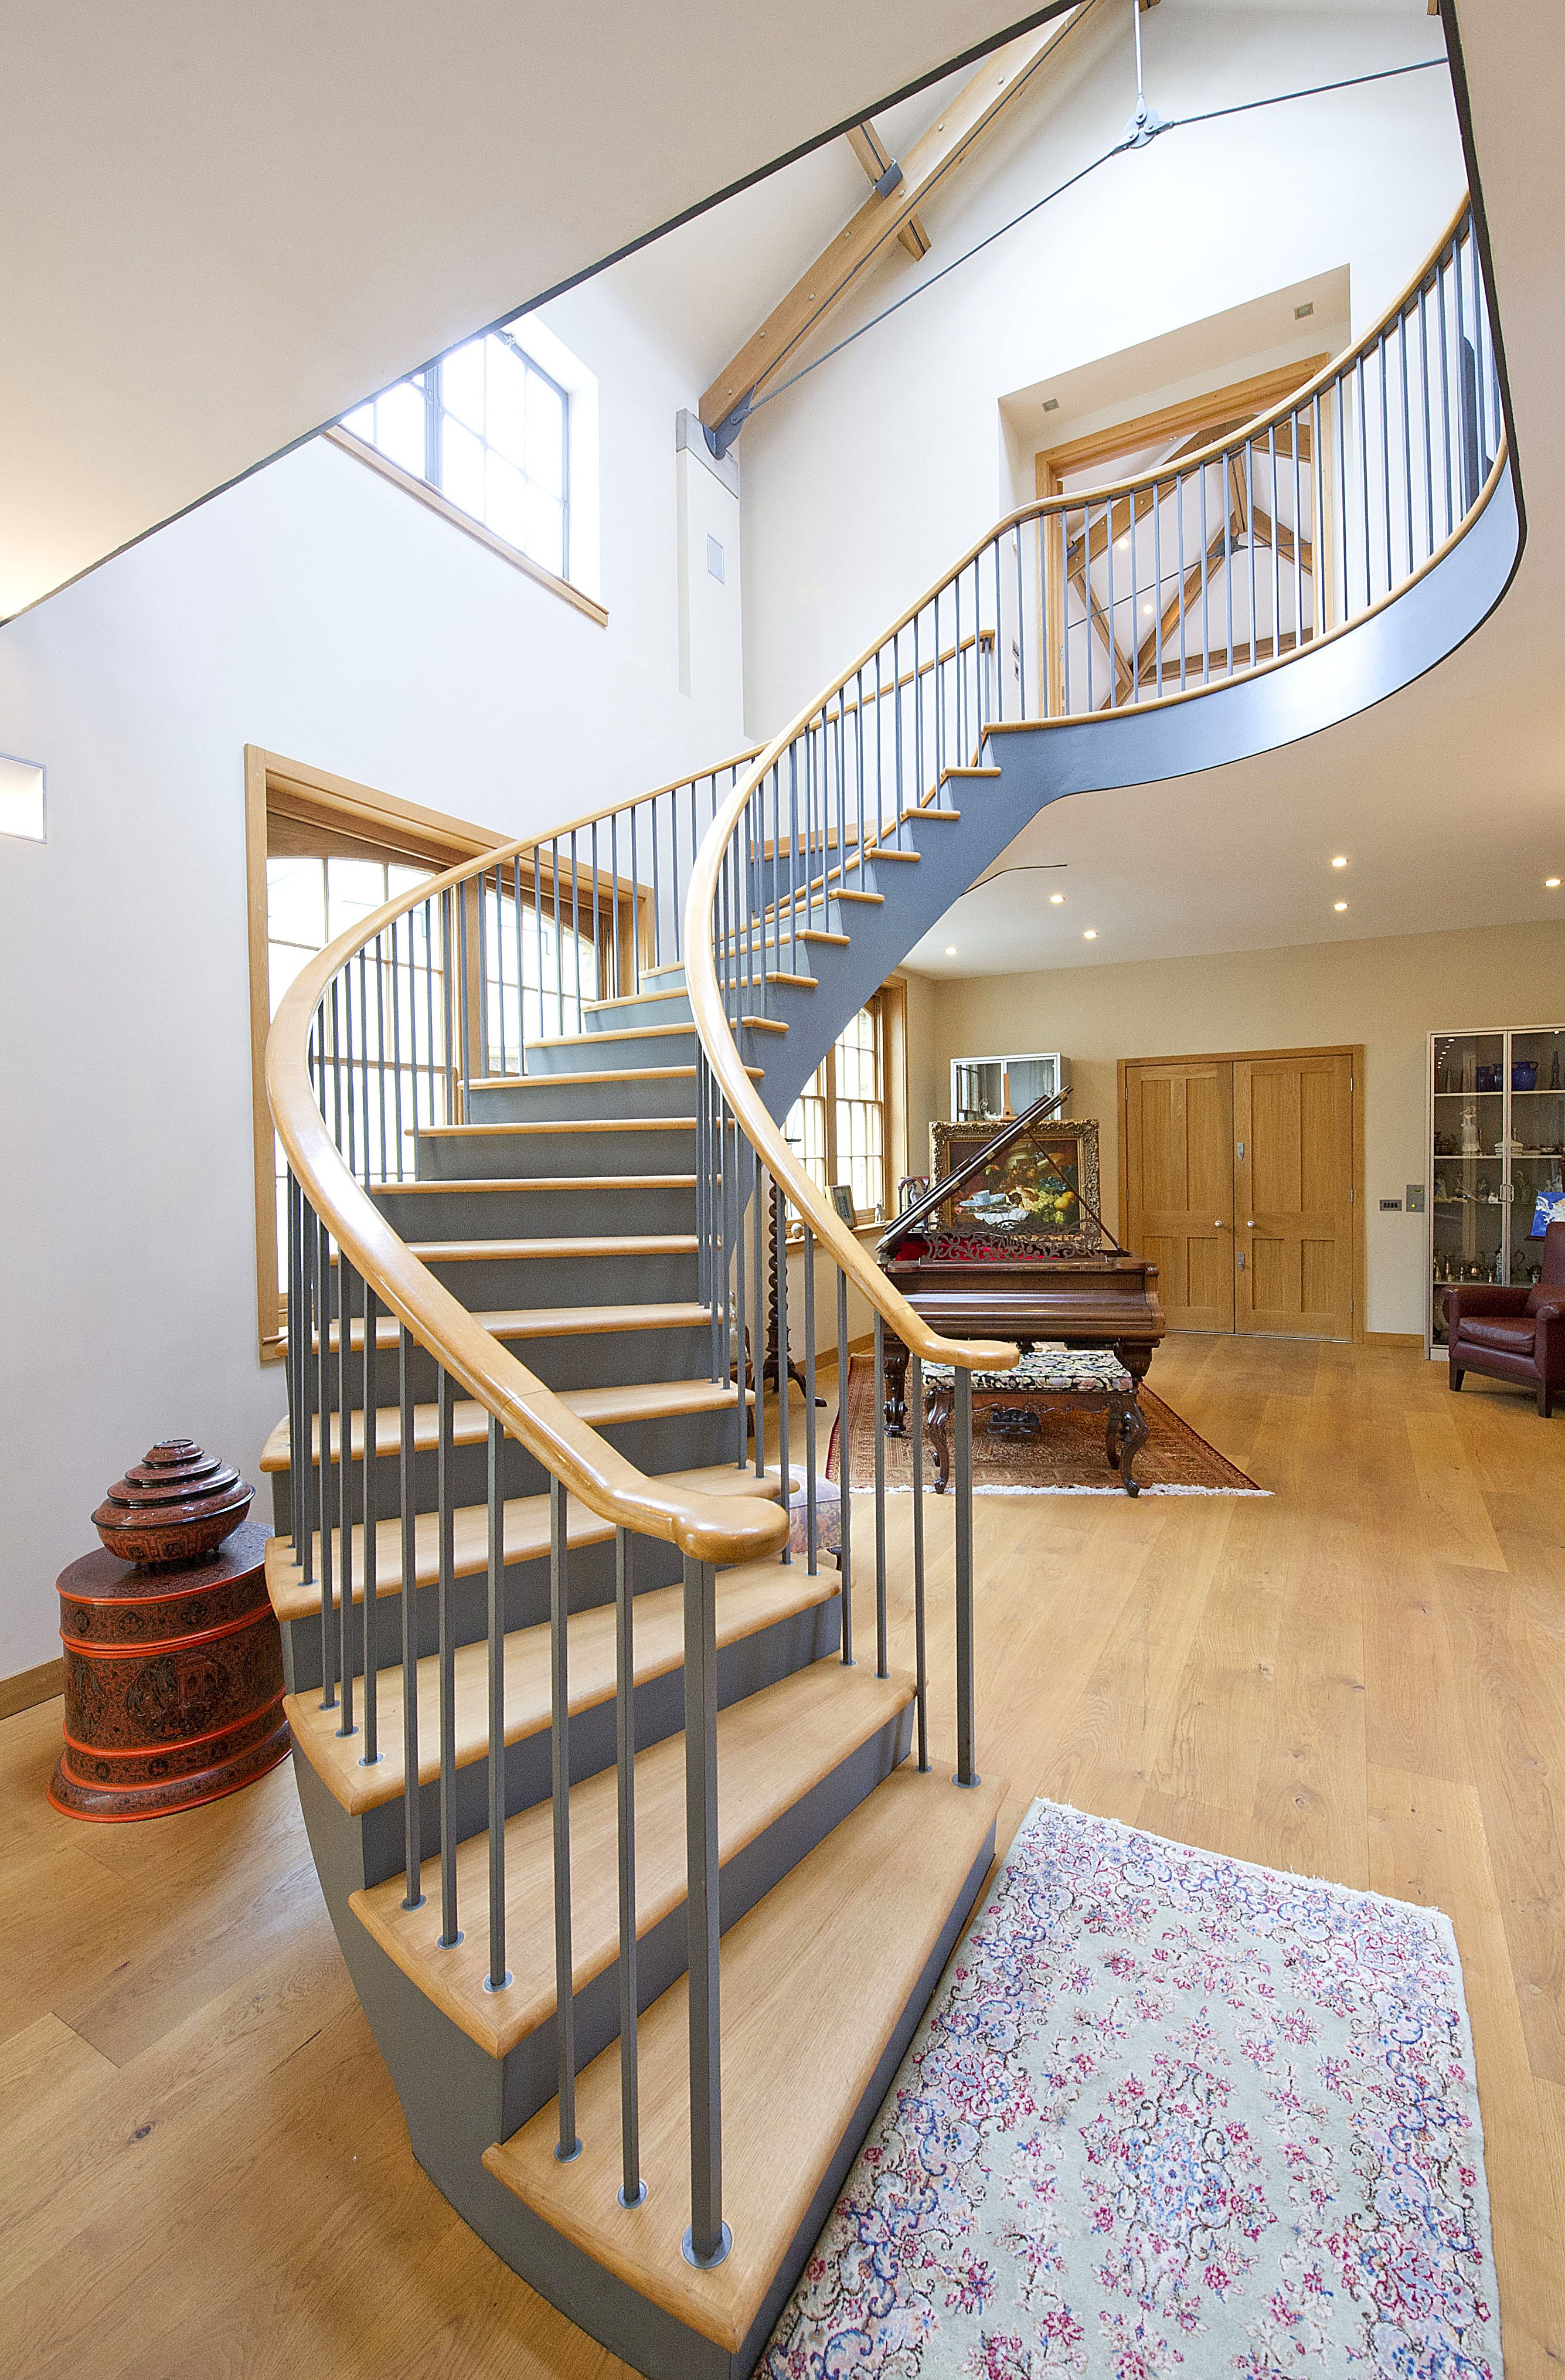 Circular Staircase - Stairs, Stairwells & Staircases - Pinterest -